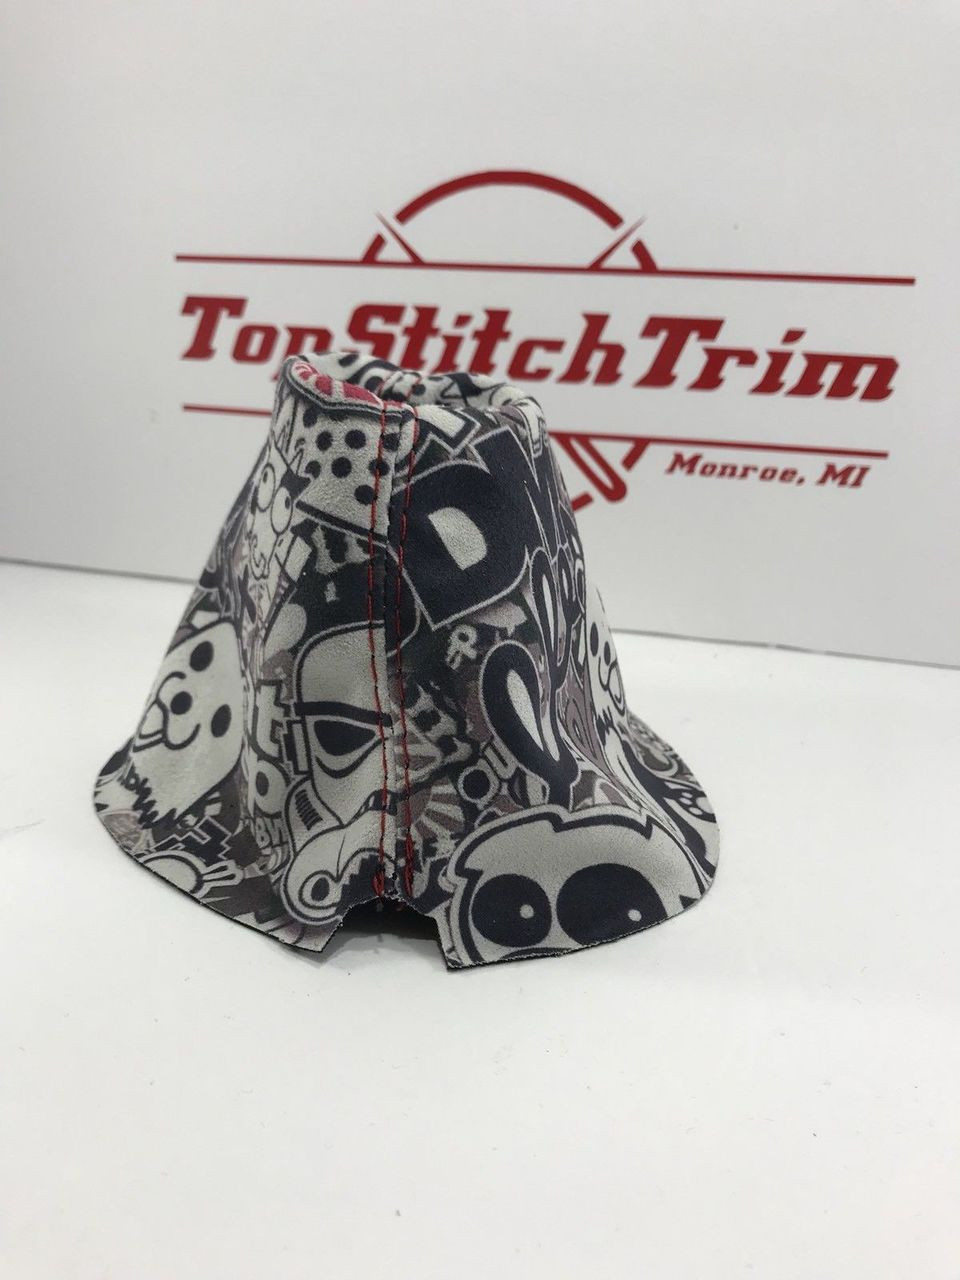 Top Stitch Trim For Nissan 350z Infinity g35 370z g37 All Years Galaxy Print Shift Boot